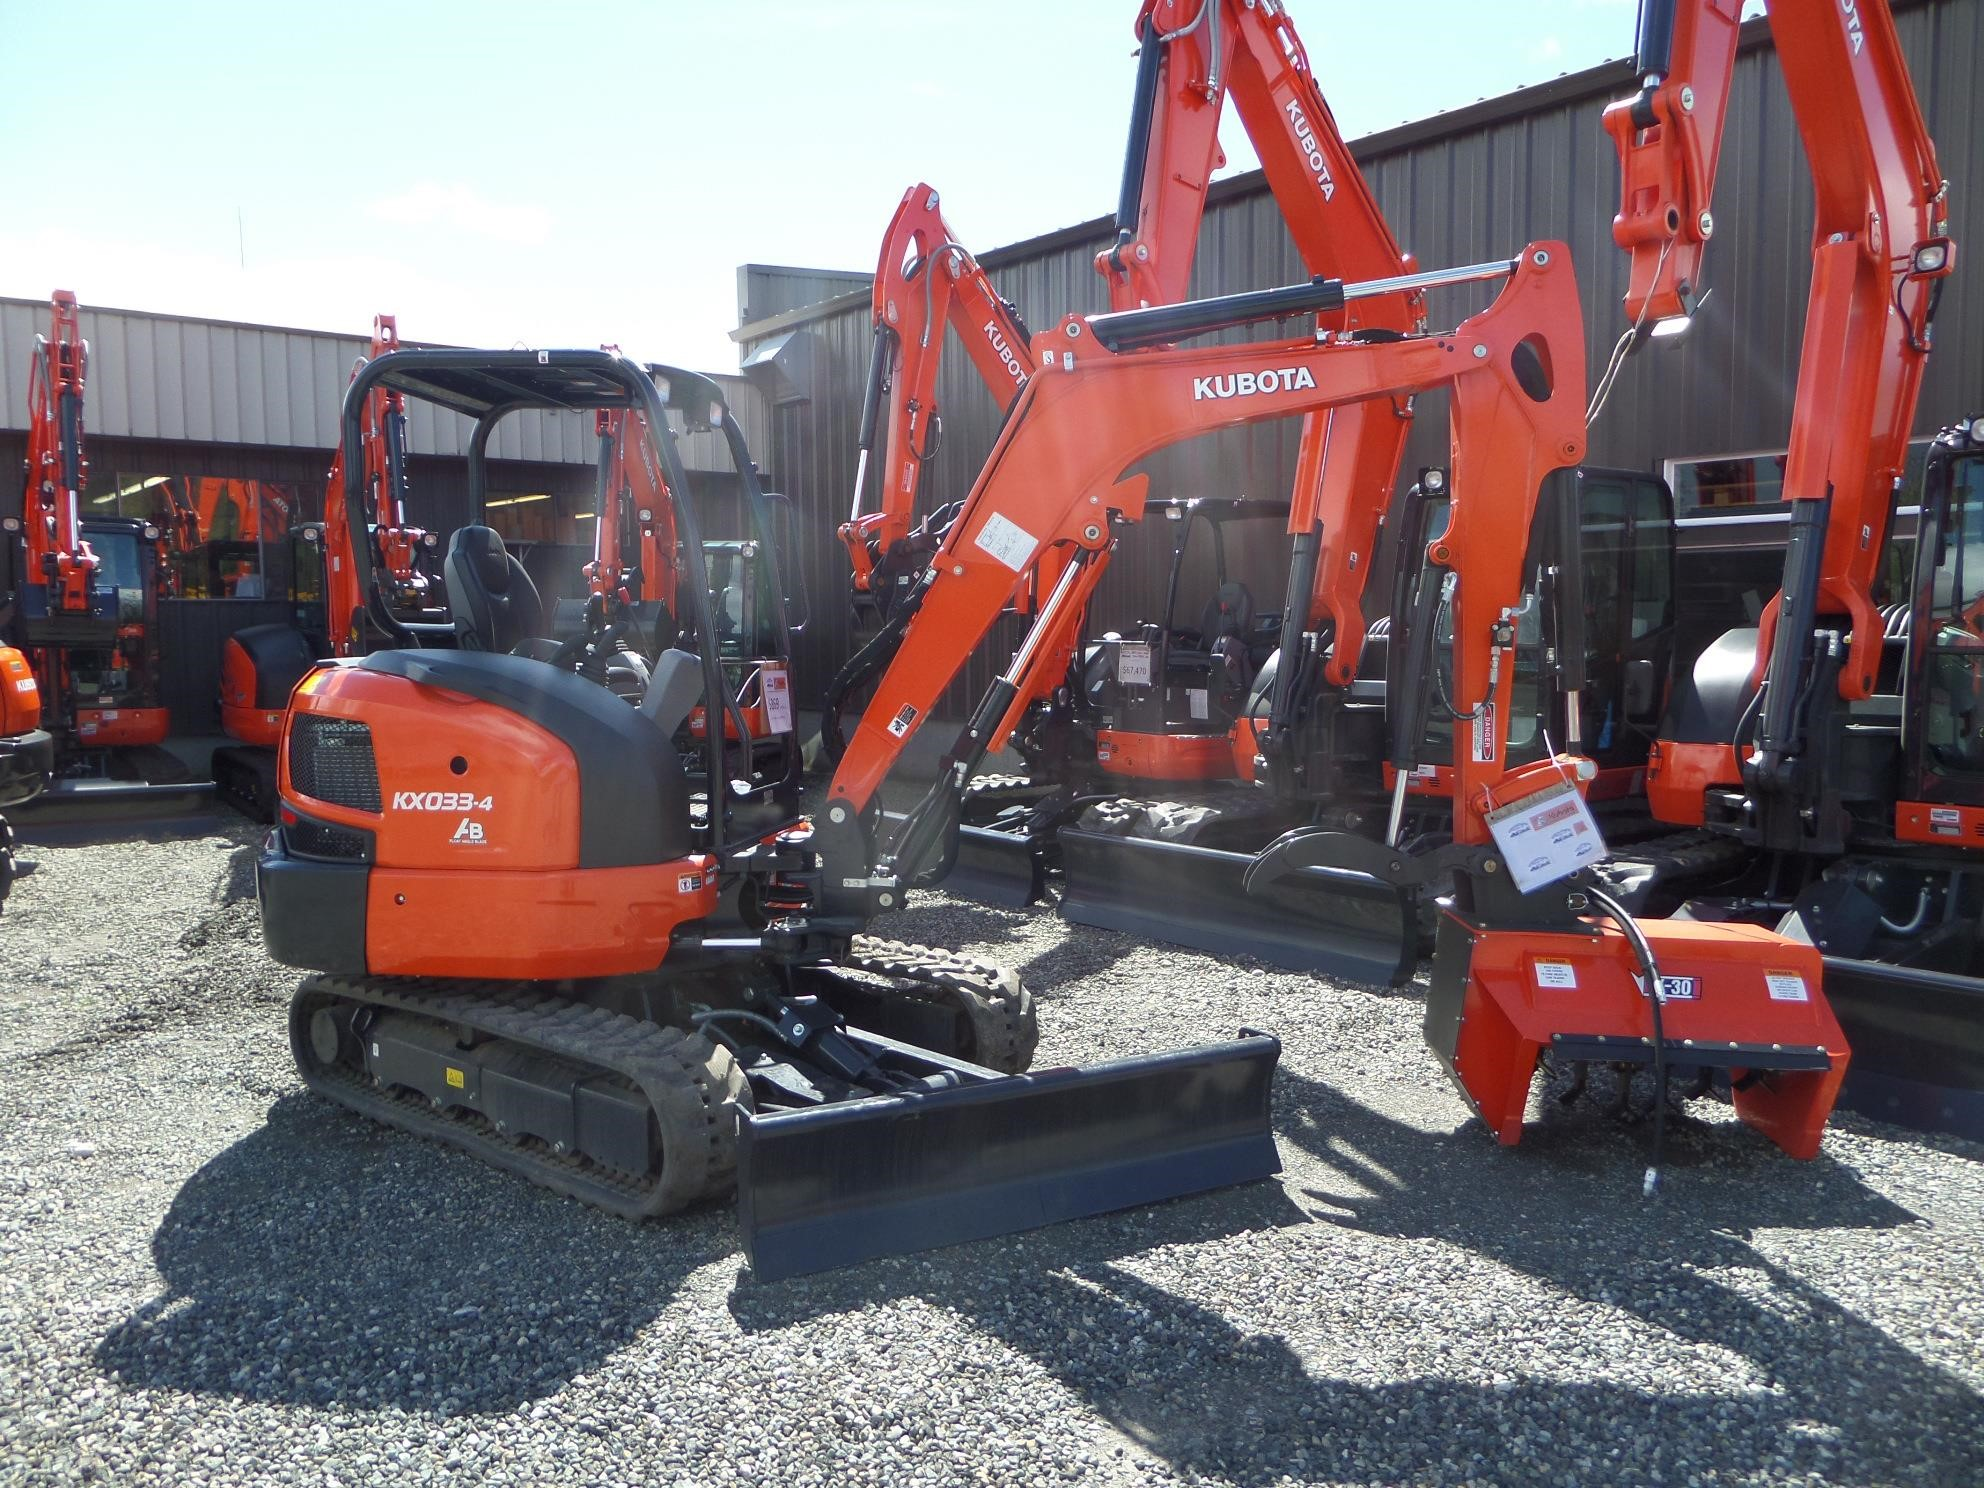 2021 Kubota KX033-4 Excavators and Mini Excavator